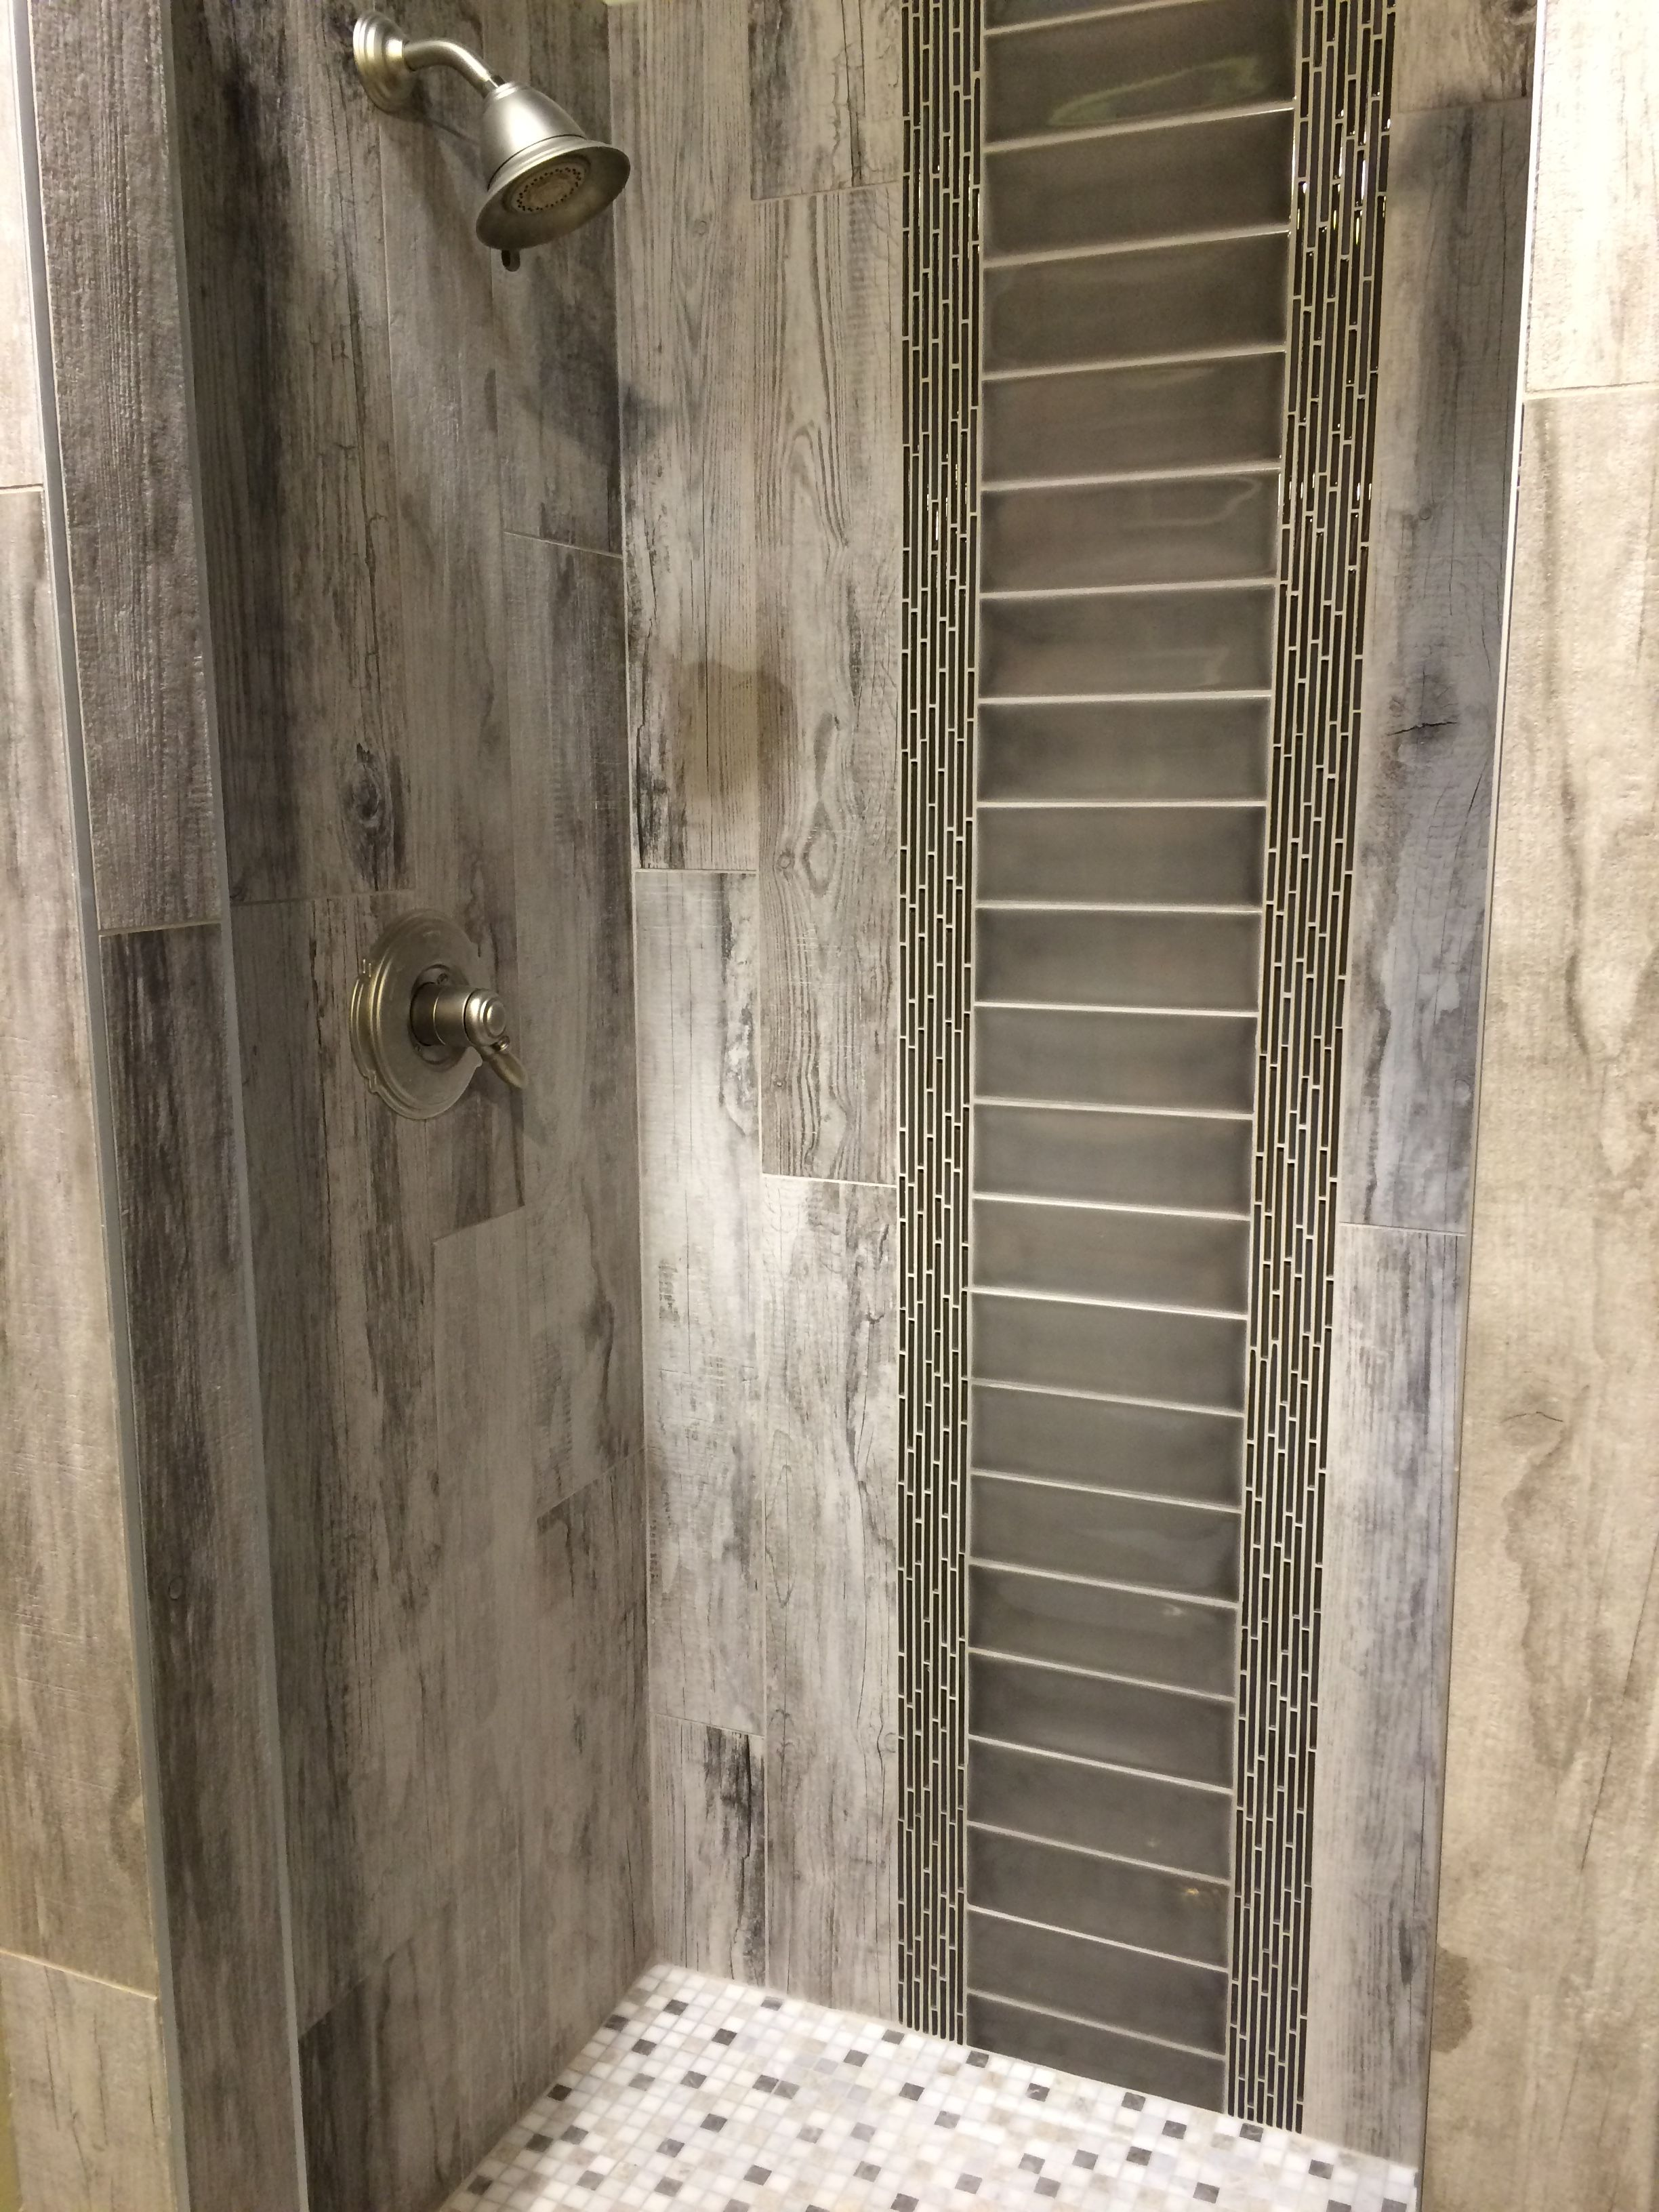 Cisa Vintage Greige Wood Look Tile, French Clay Wall Tile